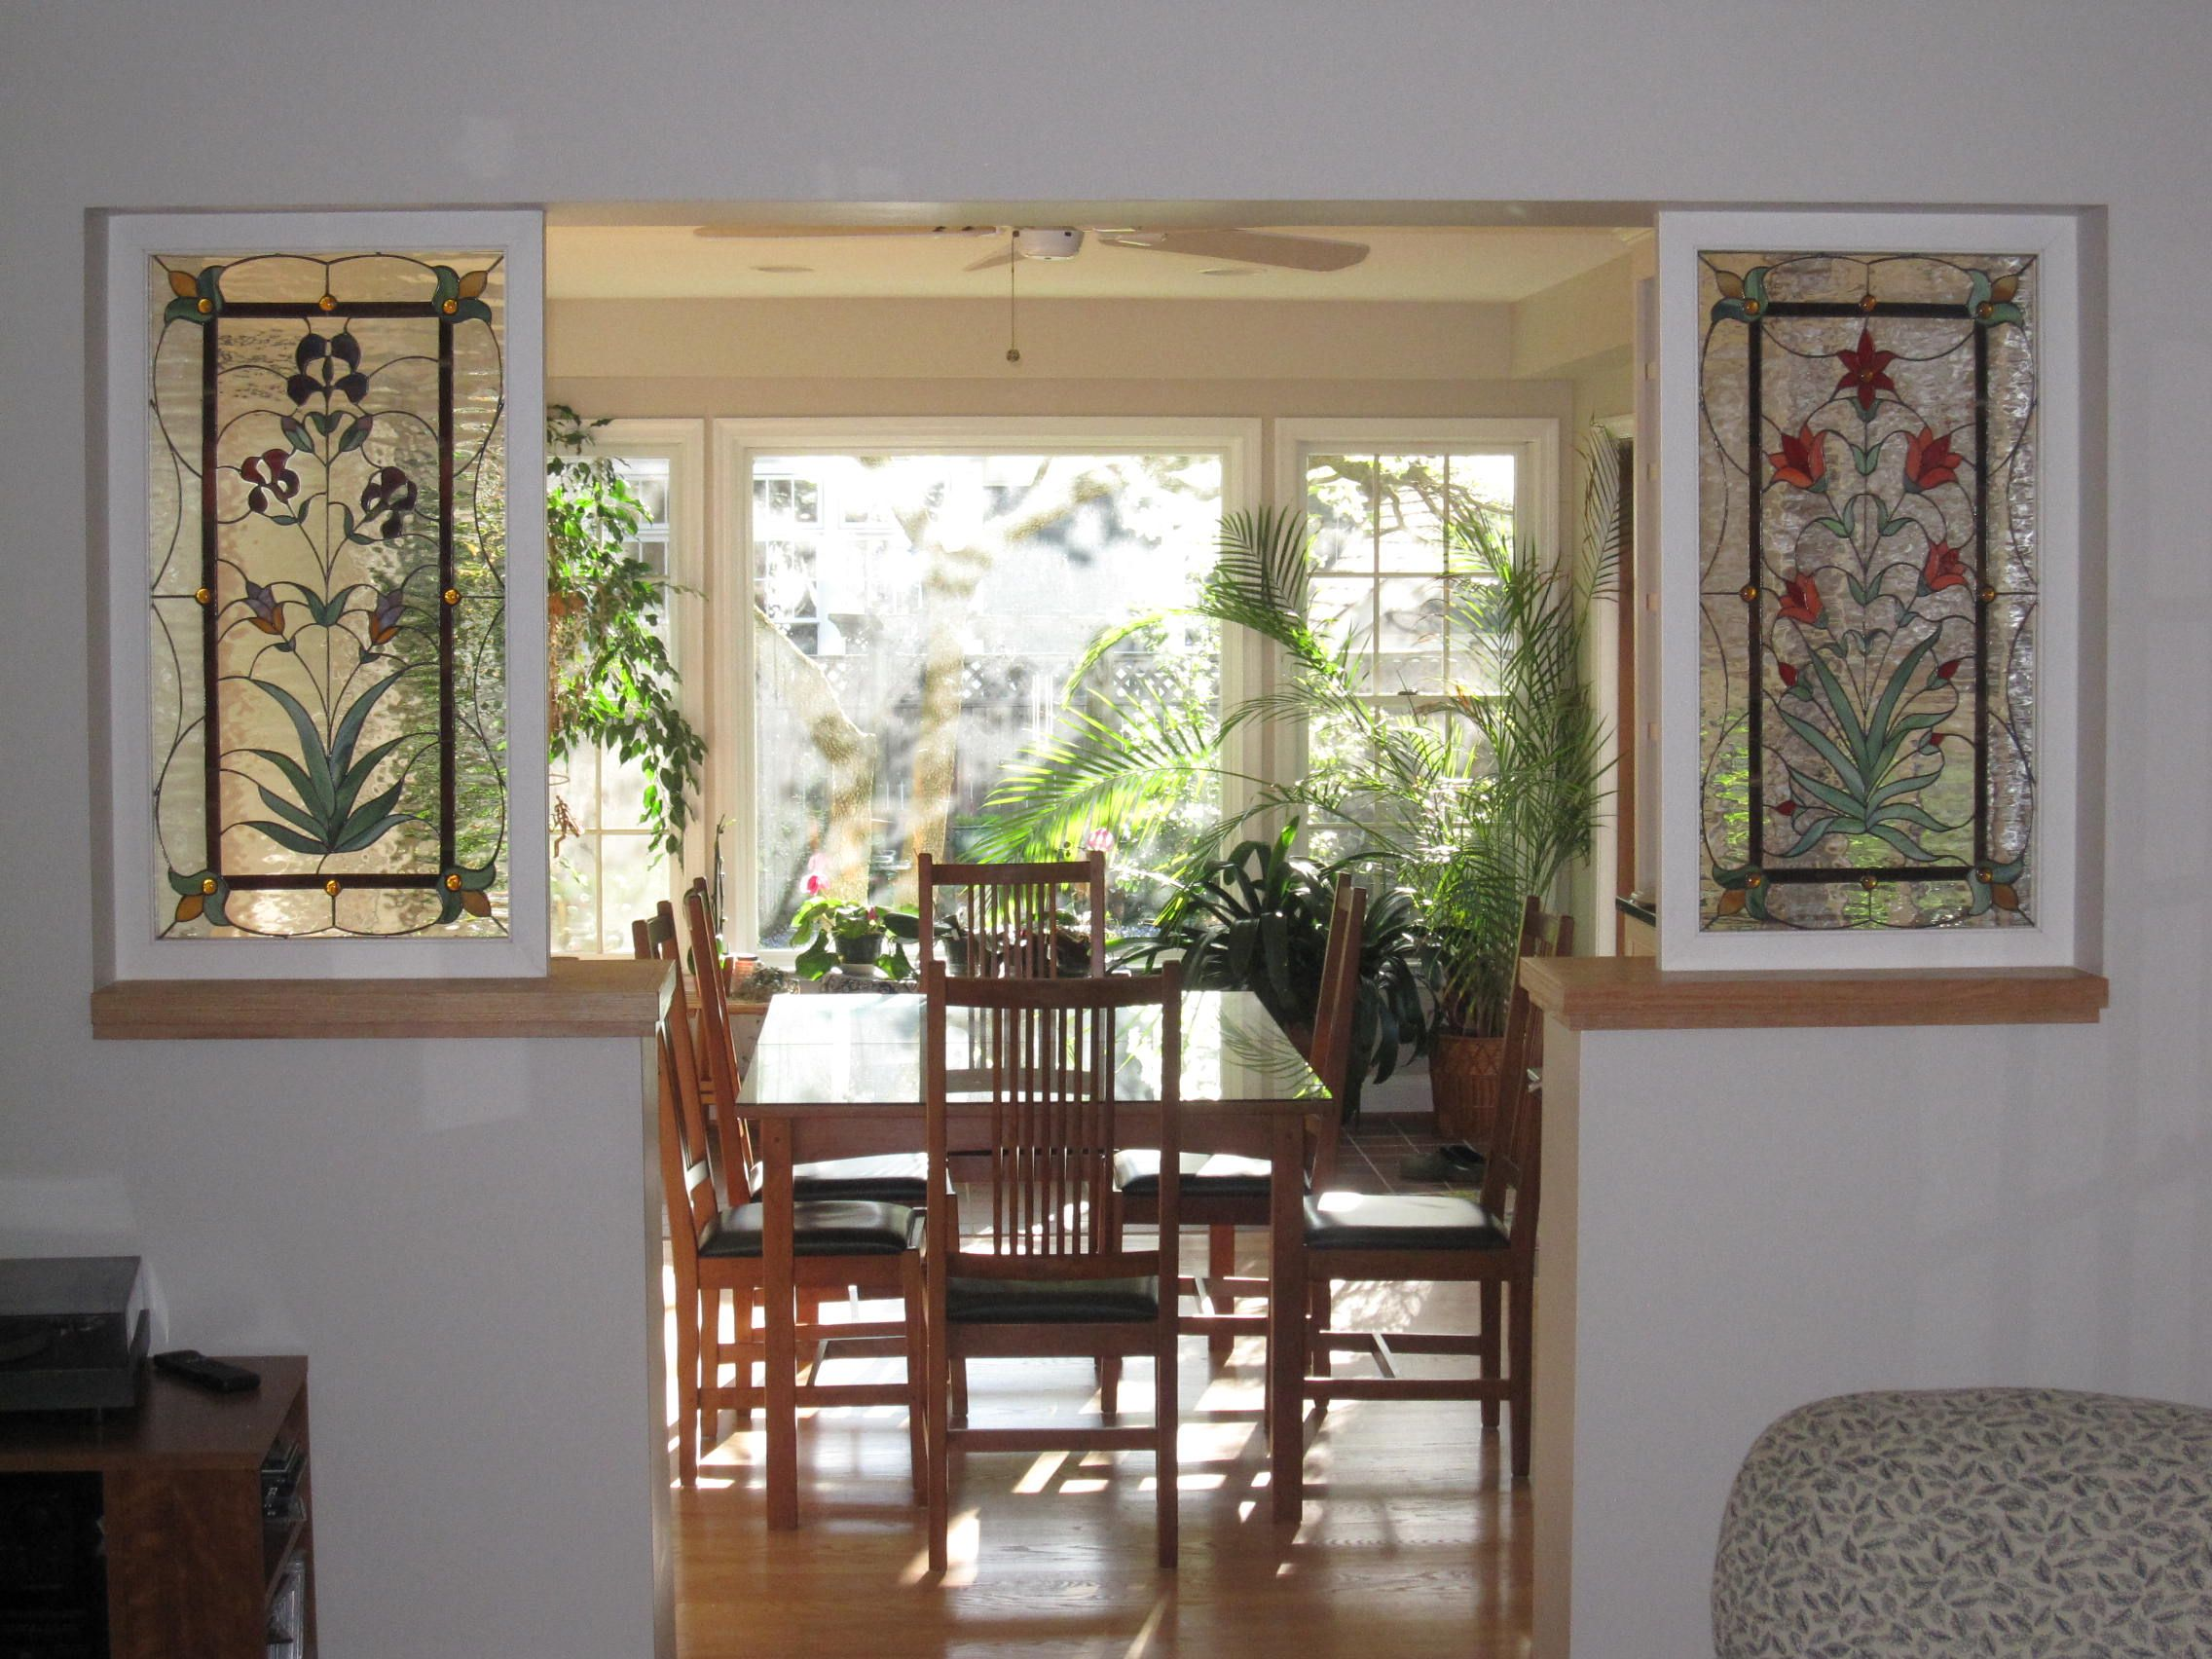 interior stained glass window | stained glass interior room